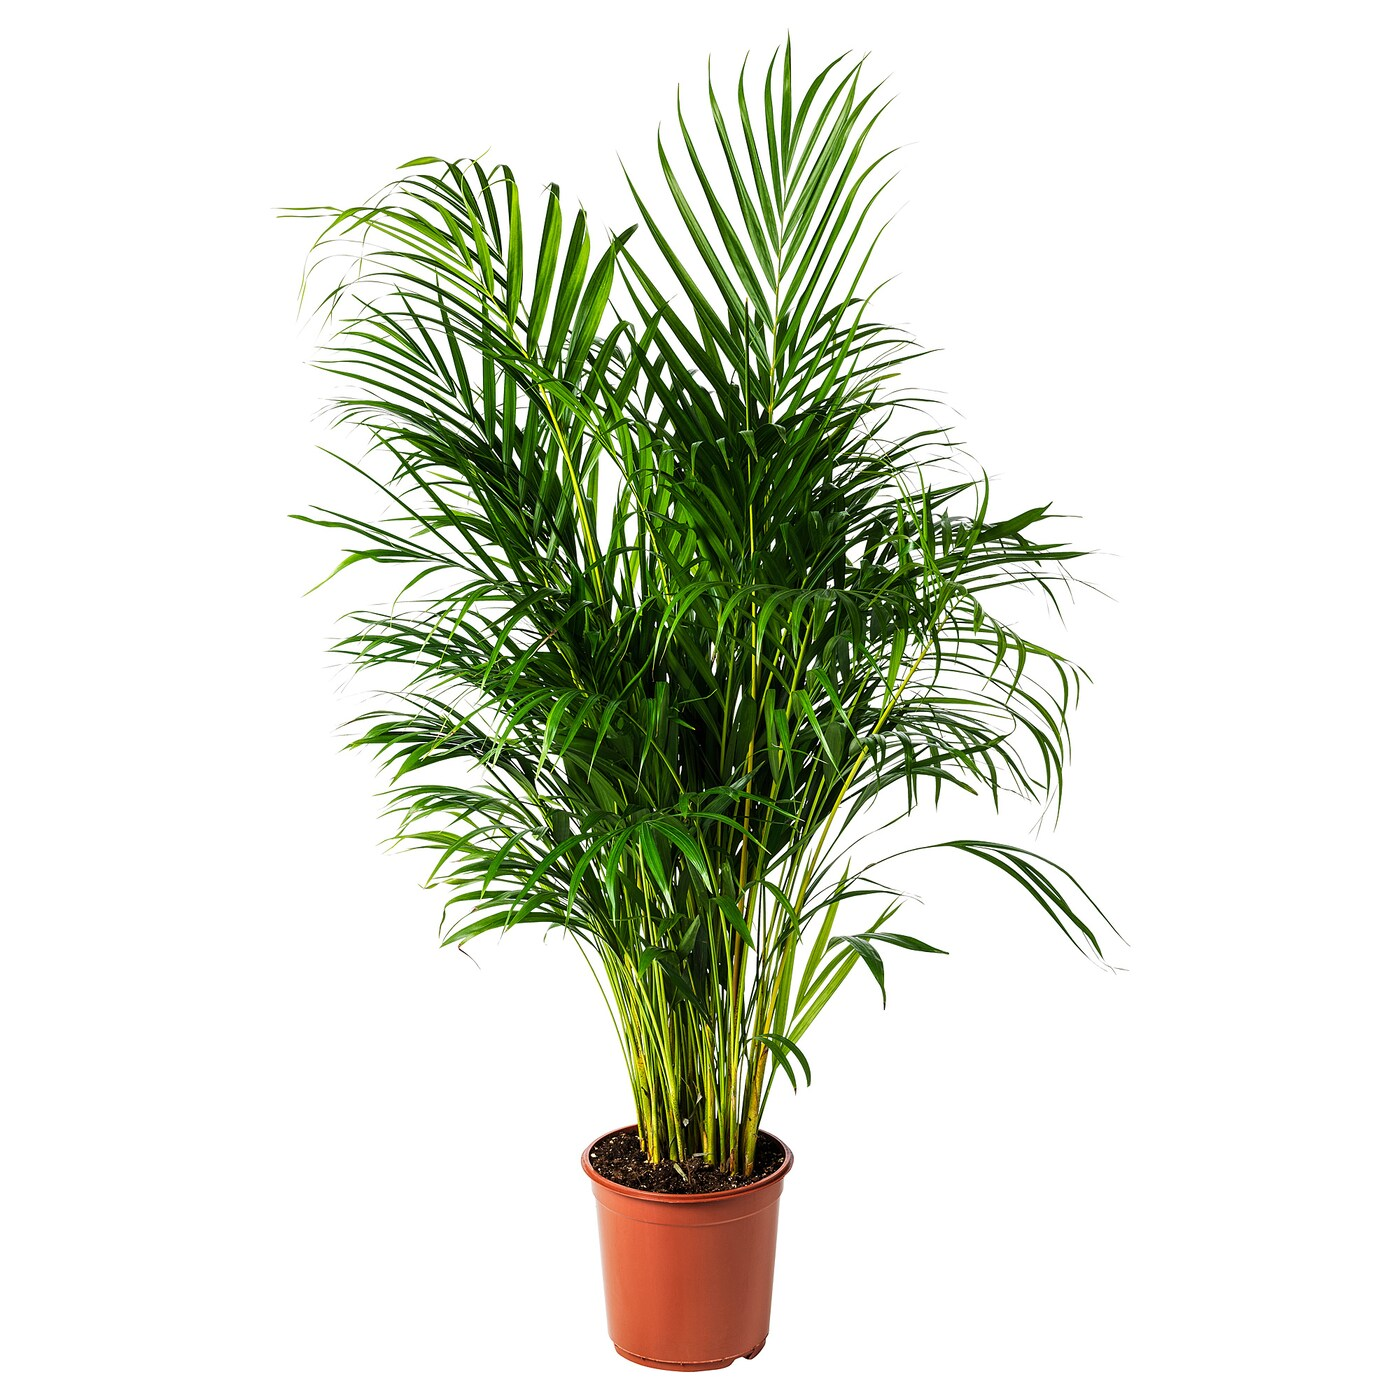 Dypsis Lutescens Pflanze Goldfruchtpalme Ikea